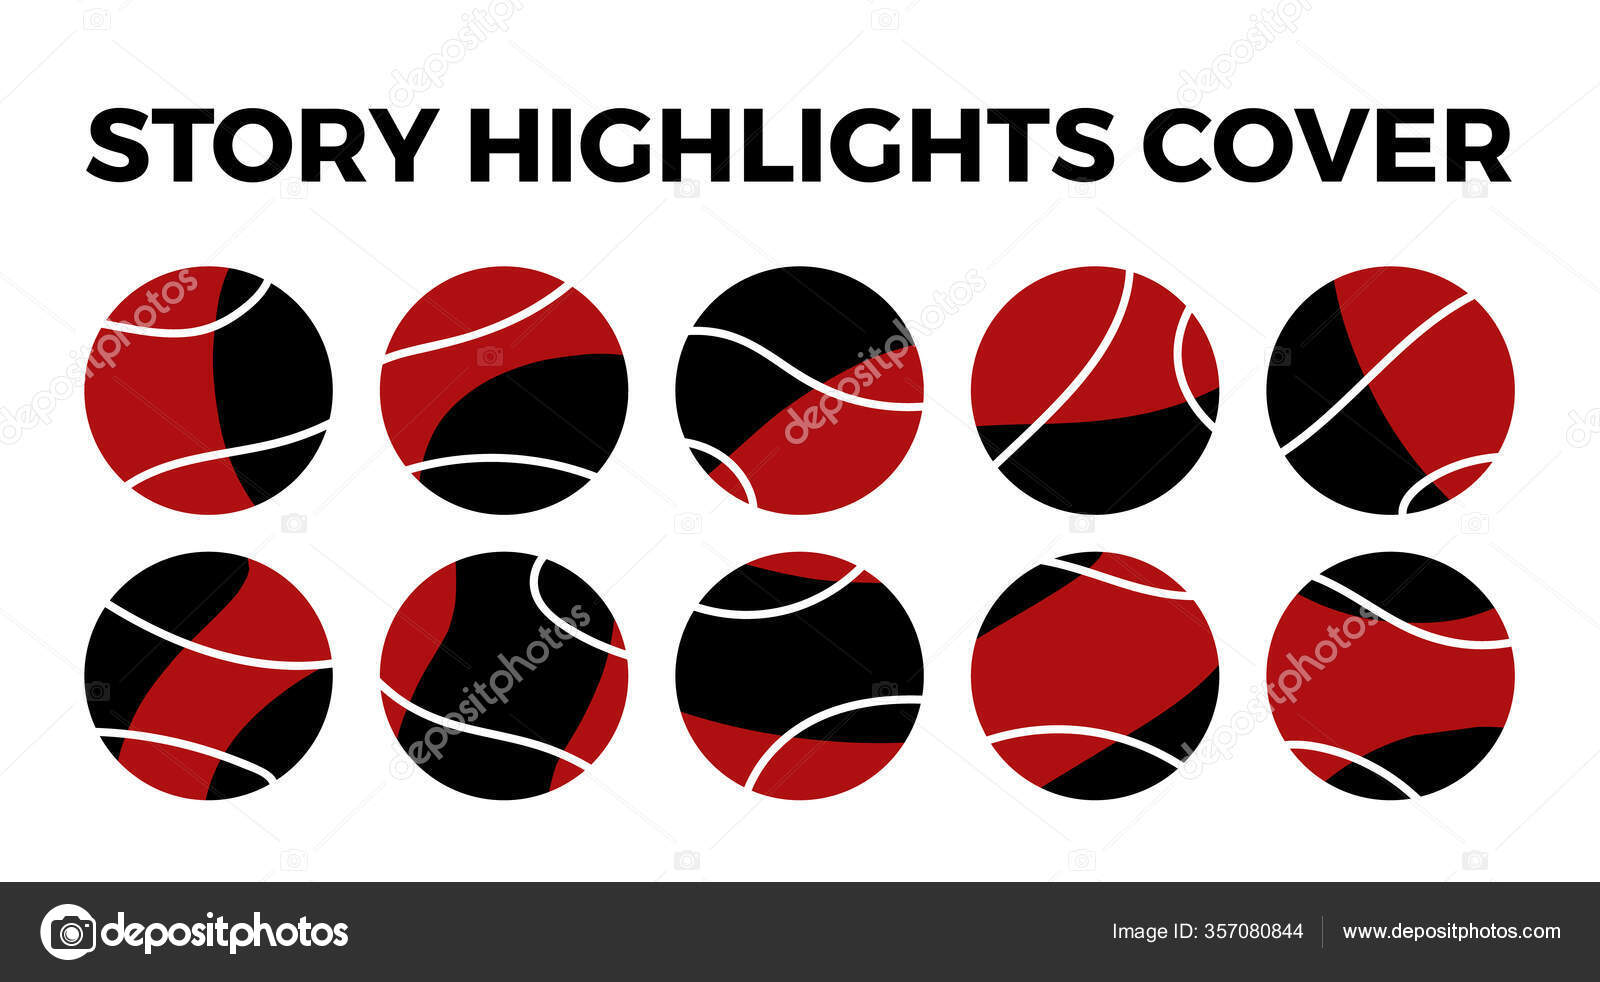 Instagram Highlights Stories Covers Icons Set Highlights Red Black Covers Stock Vector C Winst2014 357080844